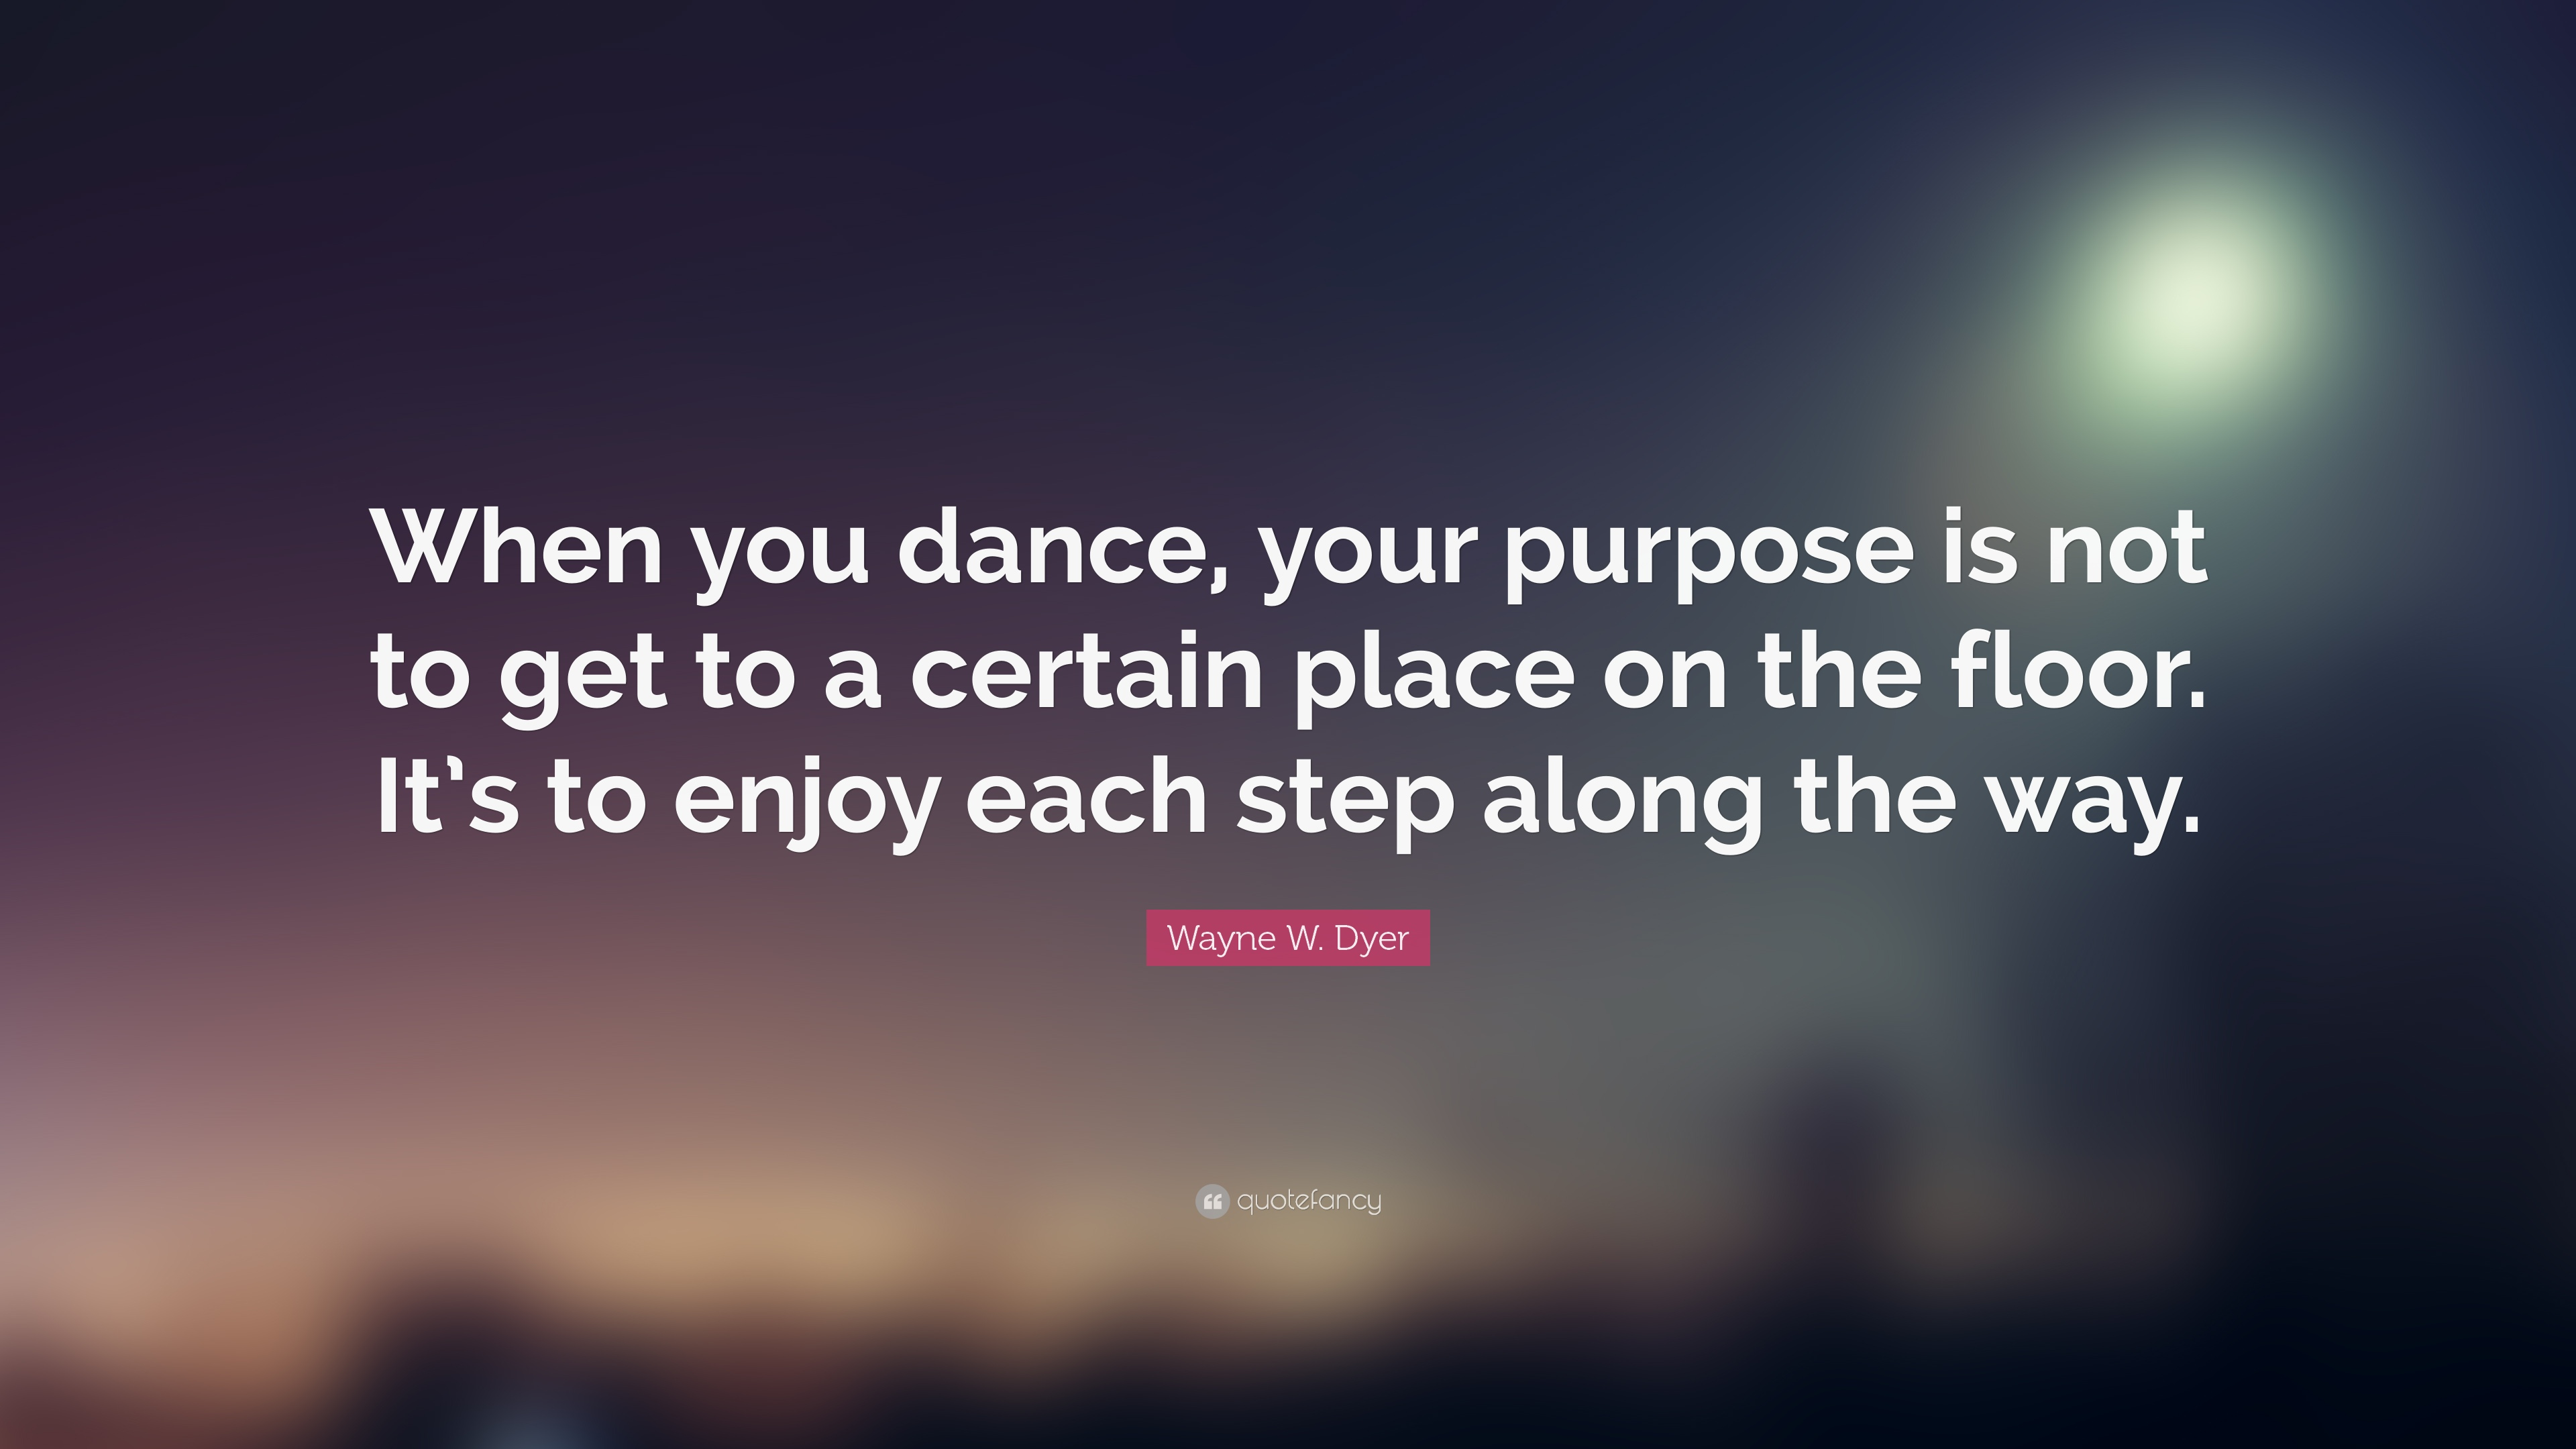 Wayne W Dyer Quote When You Dance Your Purpose Is Not To